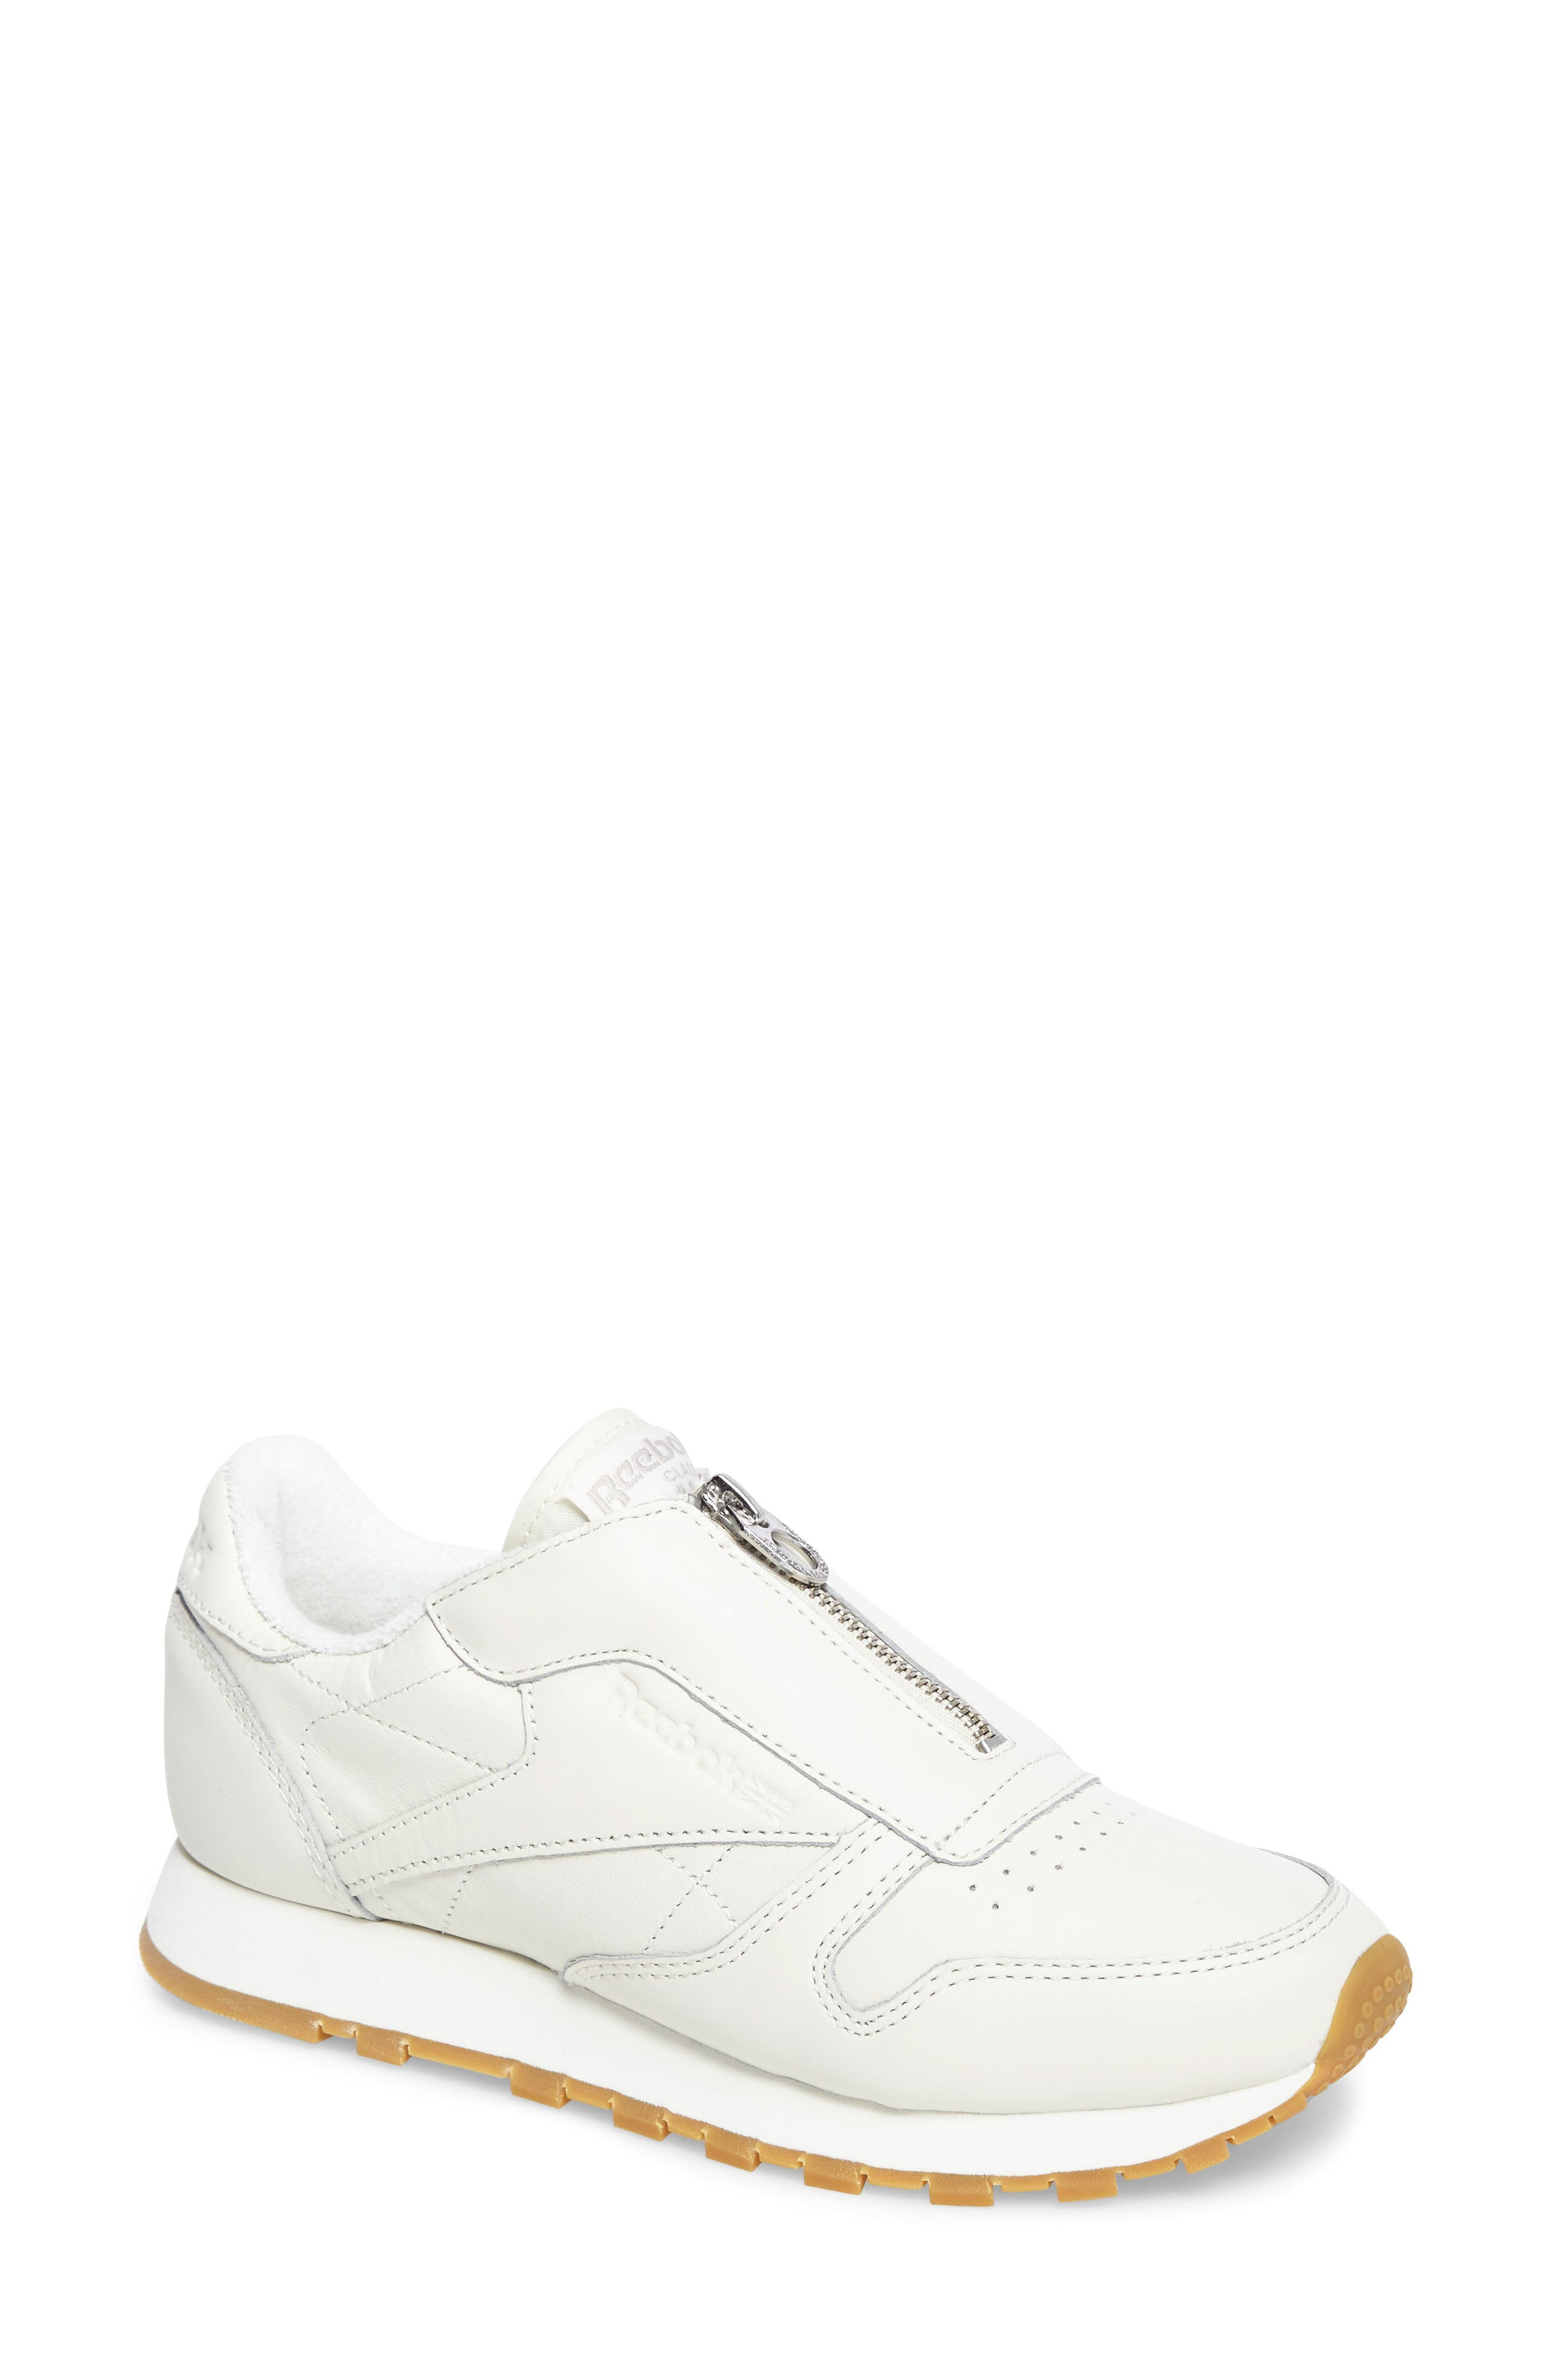 Reebok Classic Leather Zip Sneaker (Women)